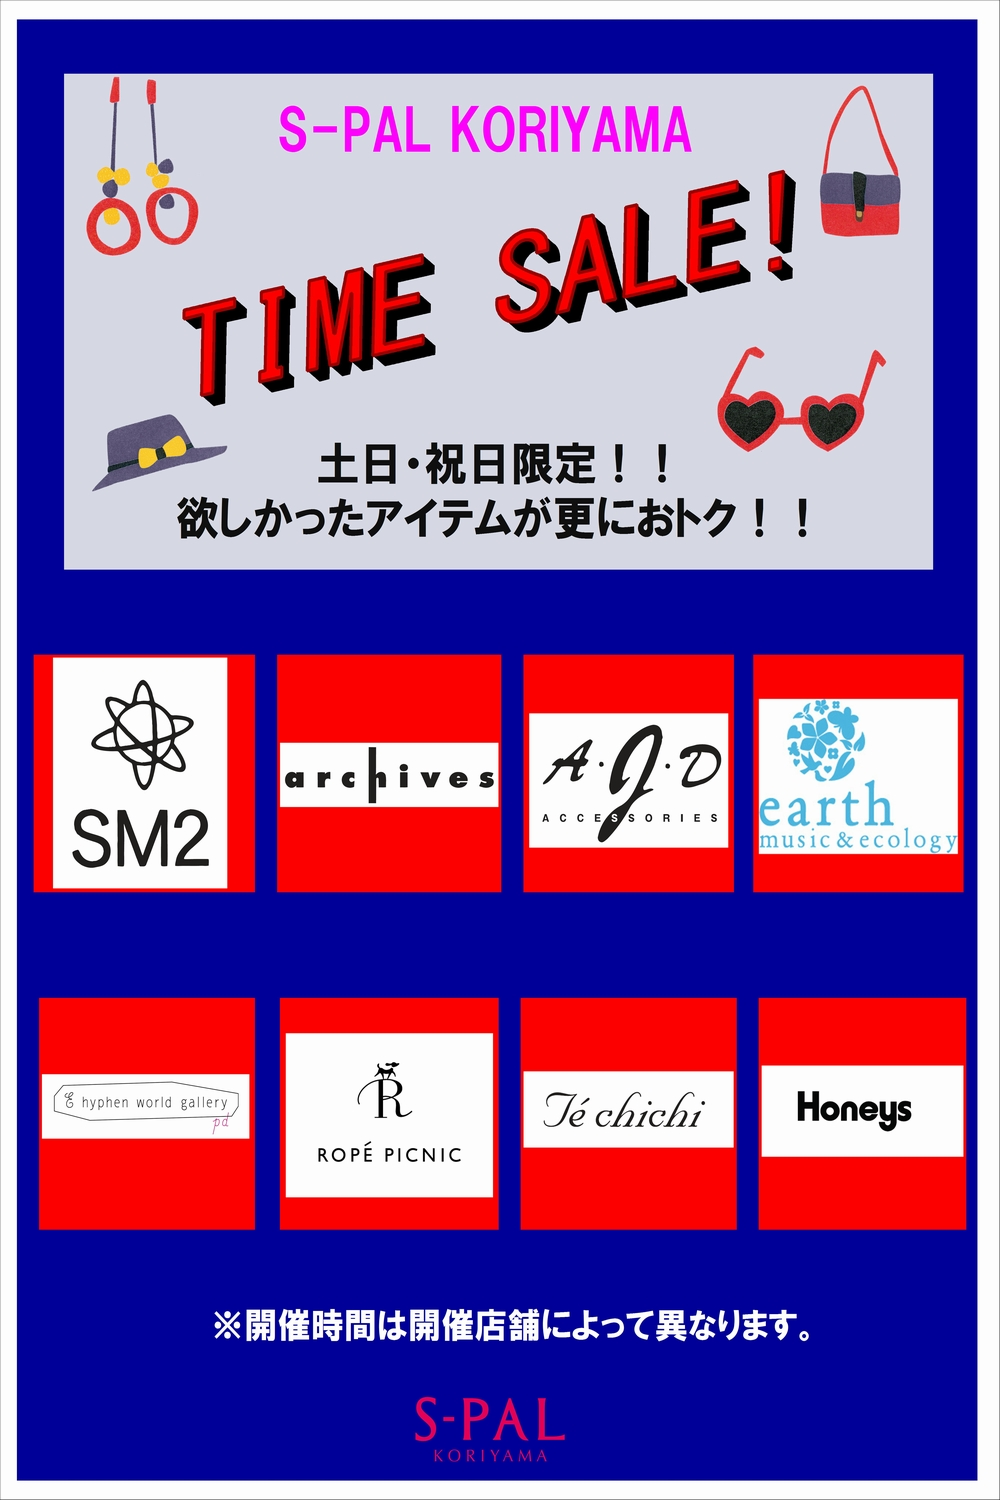 S-PAL KORIYAMA「TIME SALE」